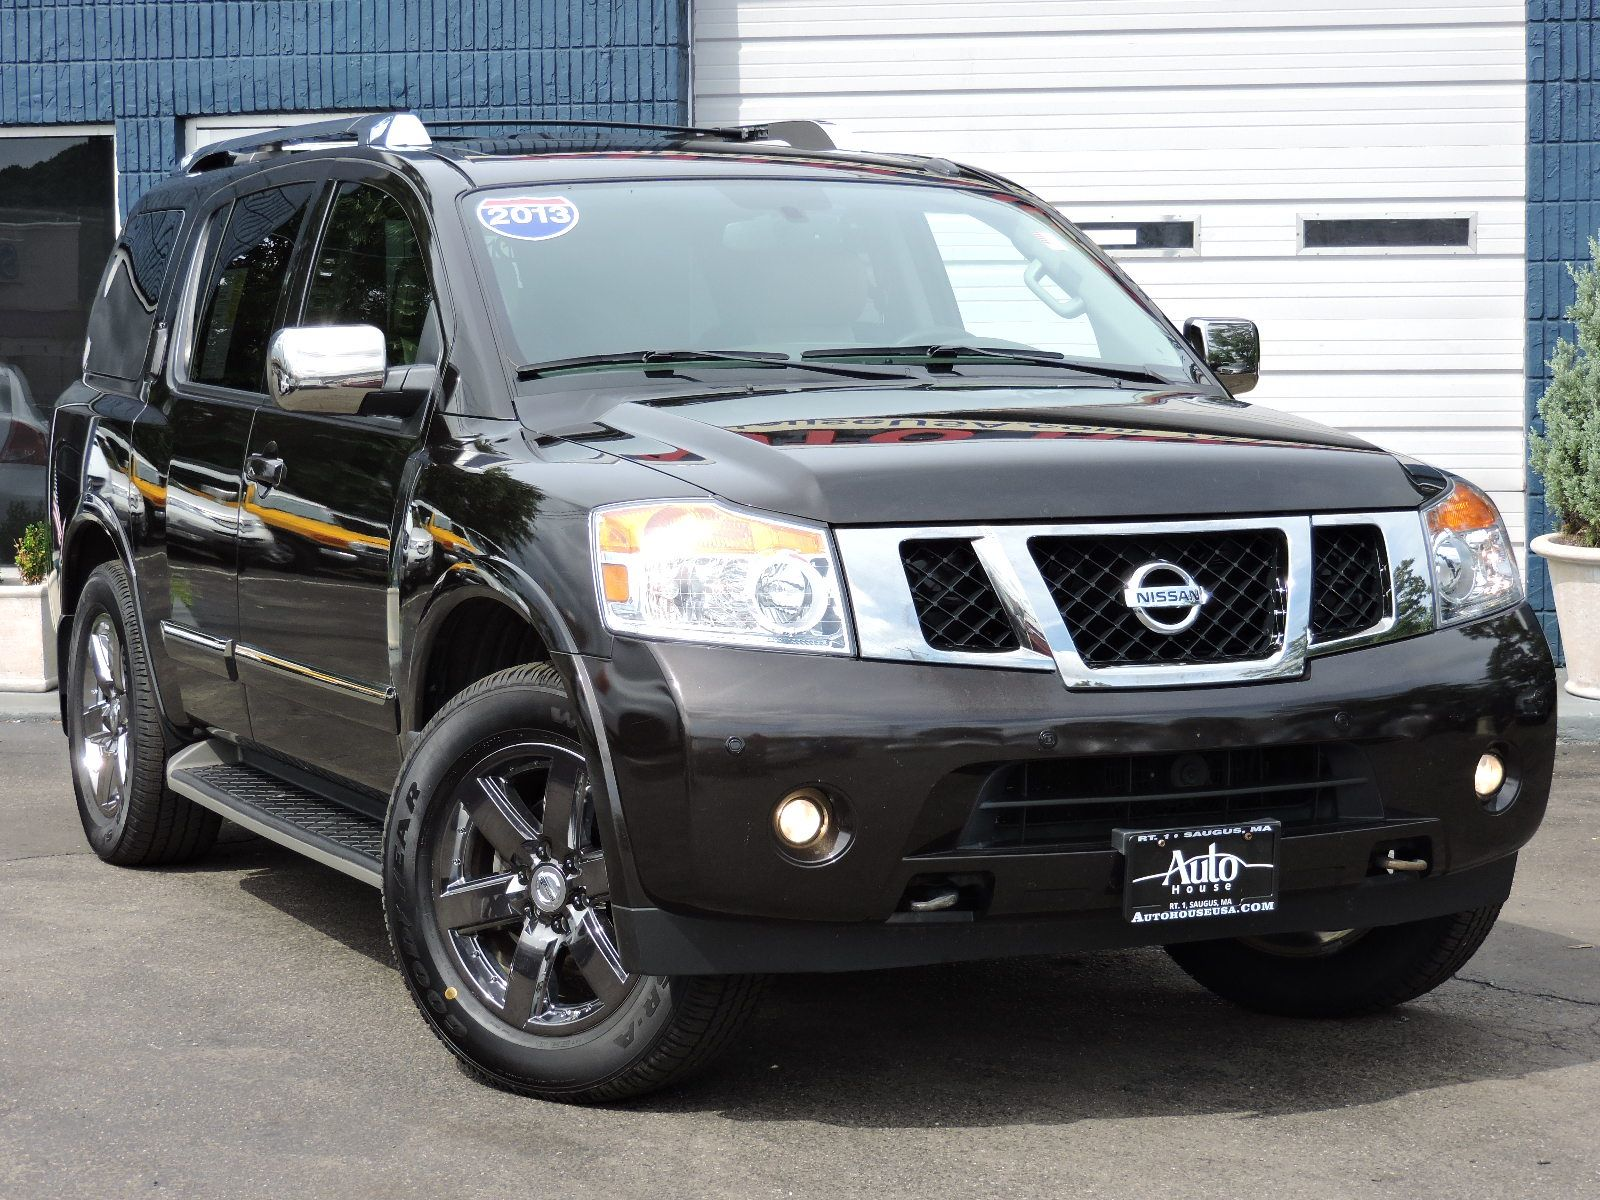 2013 Nissan Armada - Platinum Reserve Edition - All Wheel Drive - Navigation